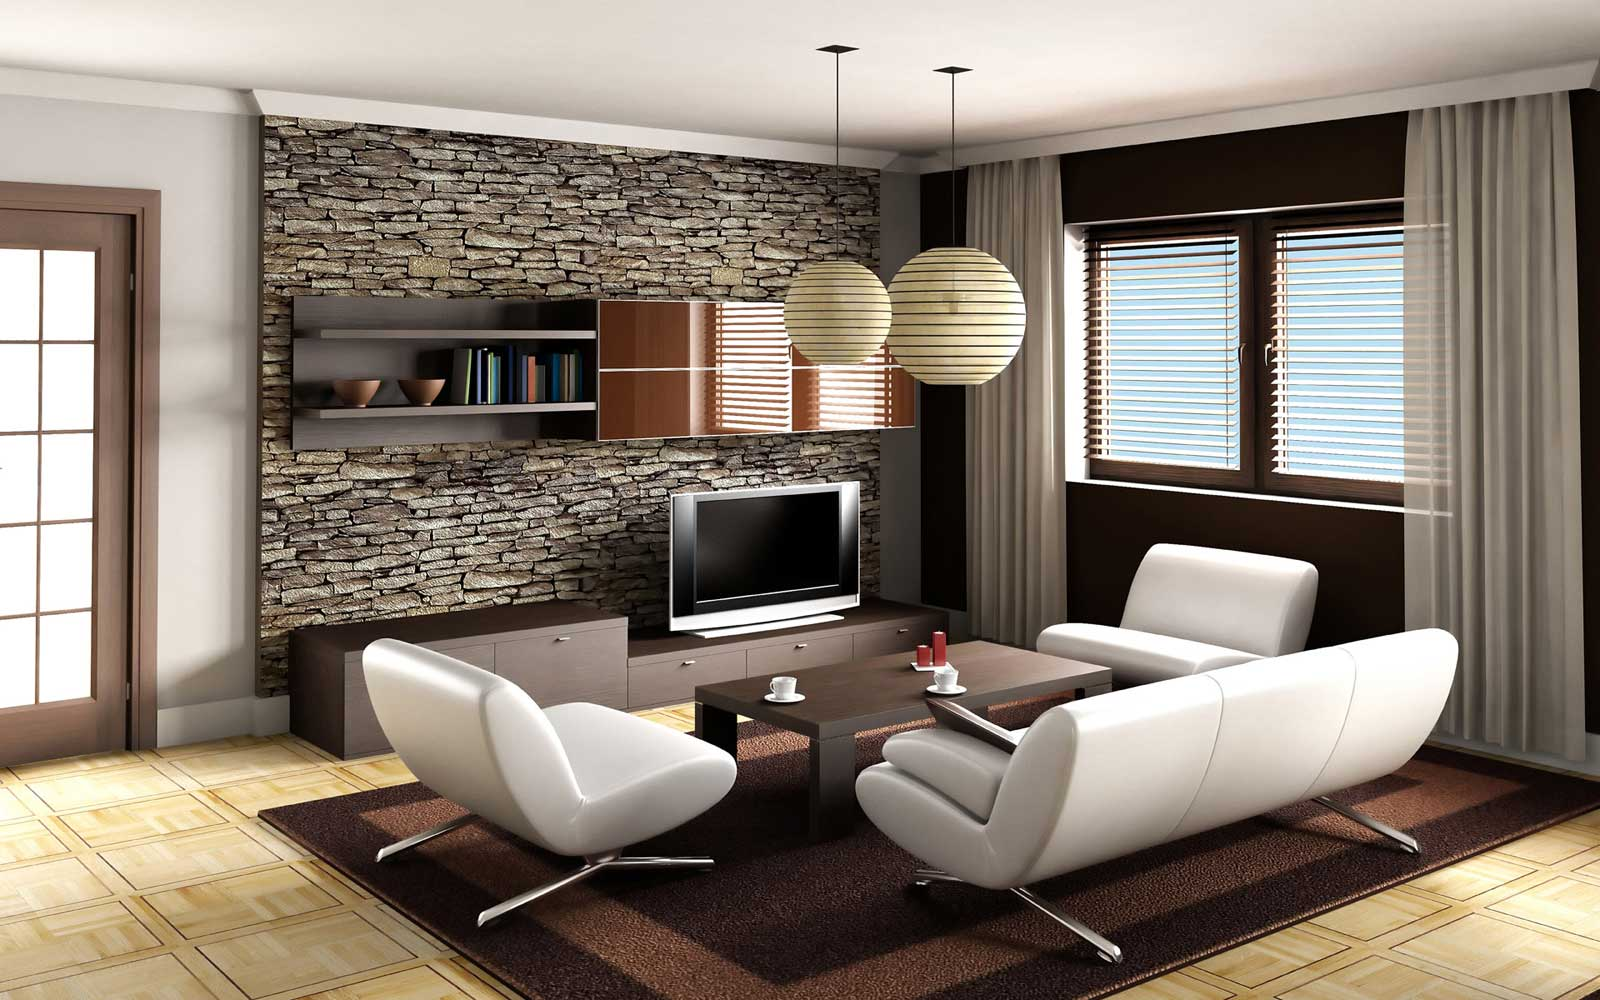 Amazing Living Room Decor Ideas With Modern Design Using White Sofa And  Stone Wall Decoration Completed